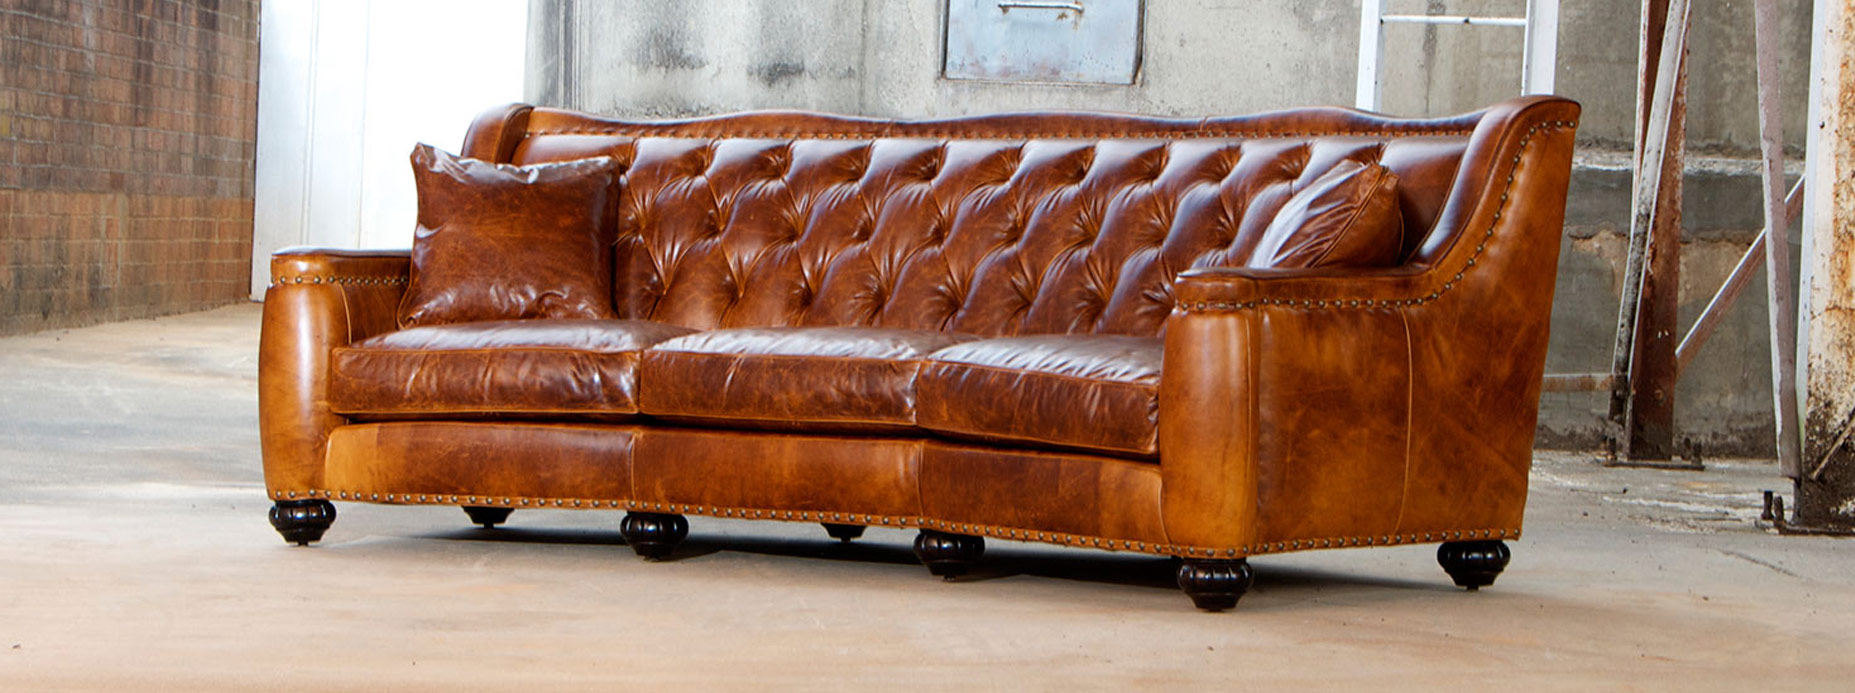 Classic Leather Furniture Discount Store and Showroom in